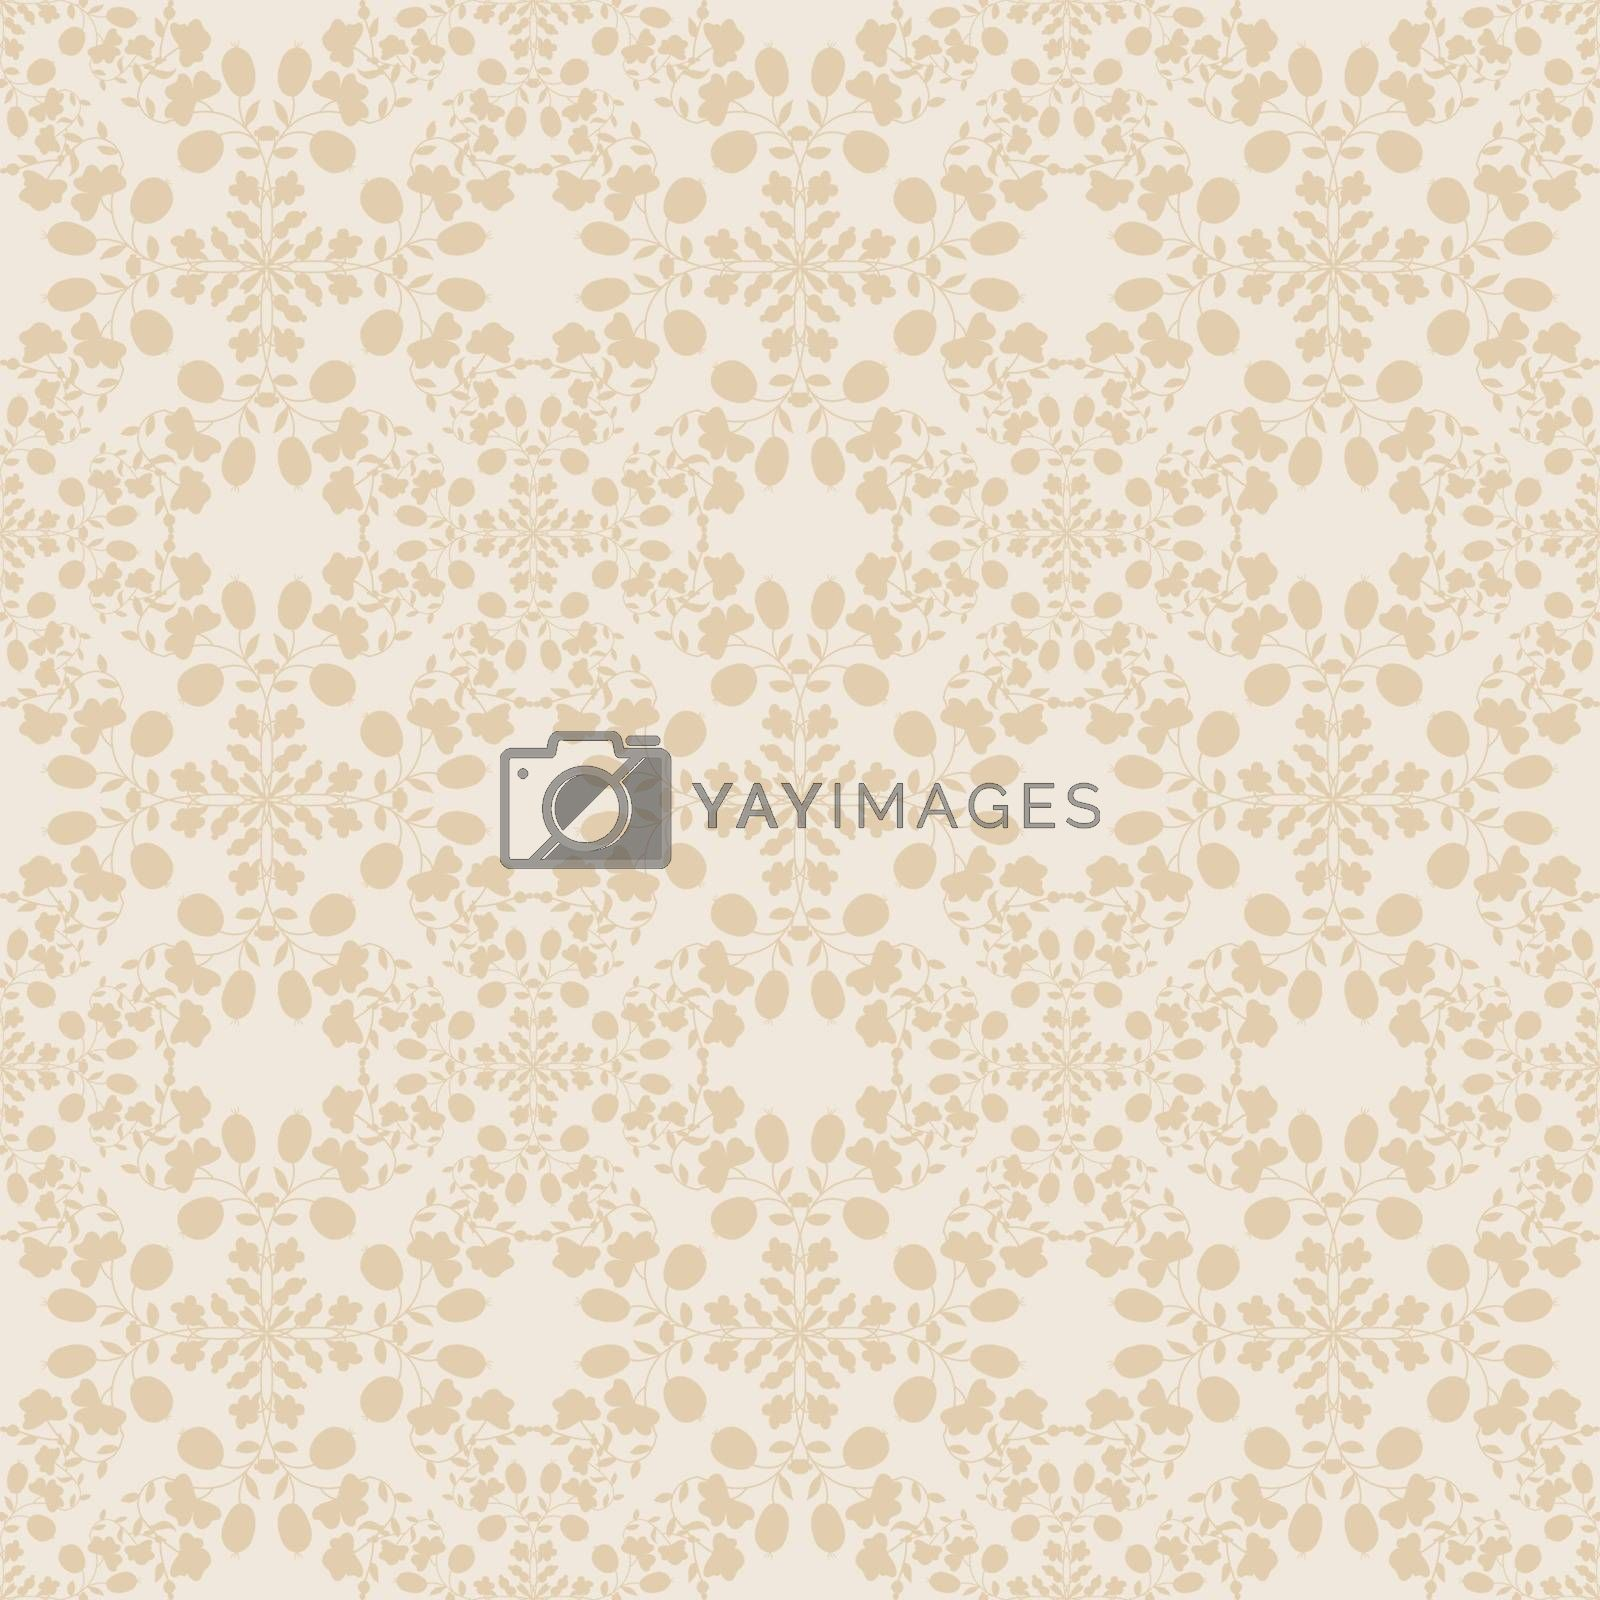 Royalty free image of neutral floral wallpaper. plant swirls and curves by LittleCuckoo